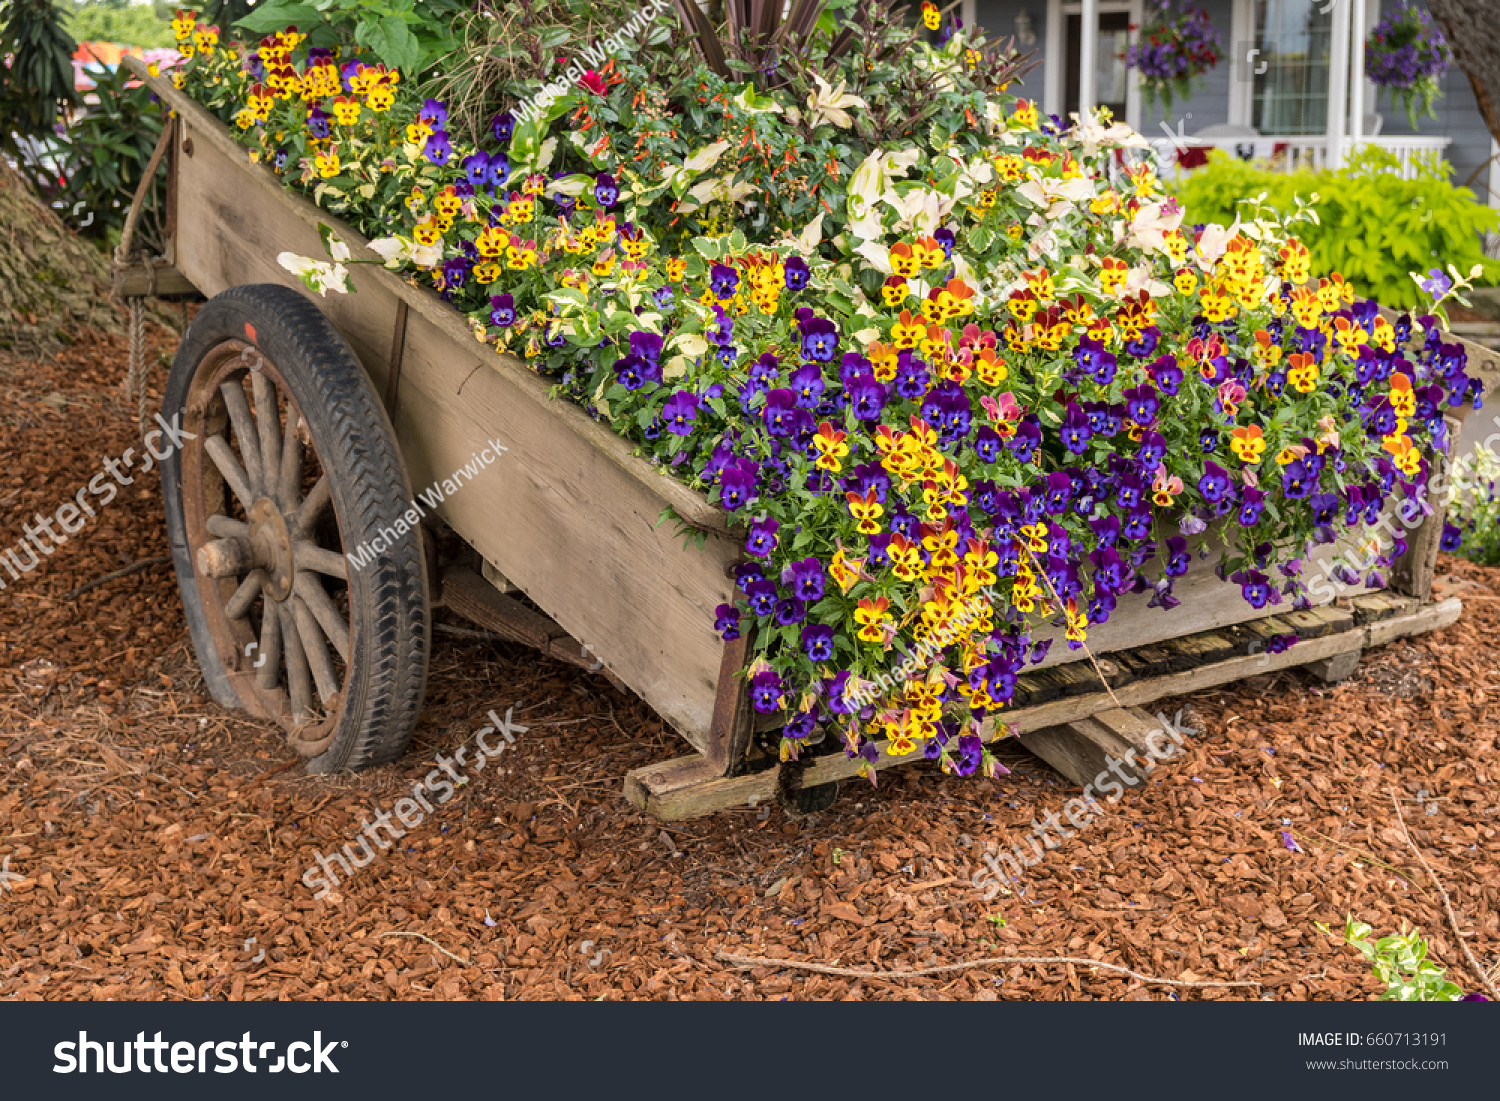 Old Wooden Garden Cart Filled Colorful Stock Photo (Edit Now ...